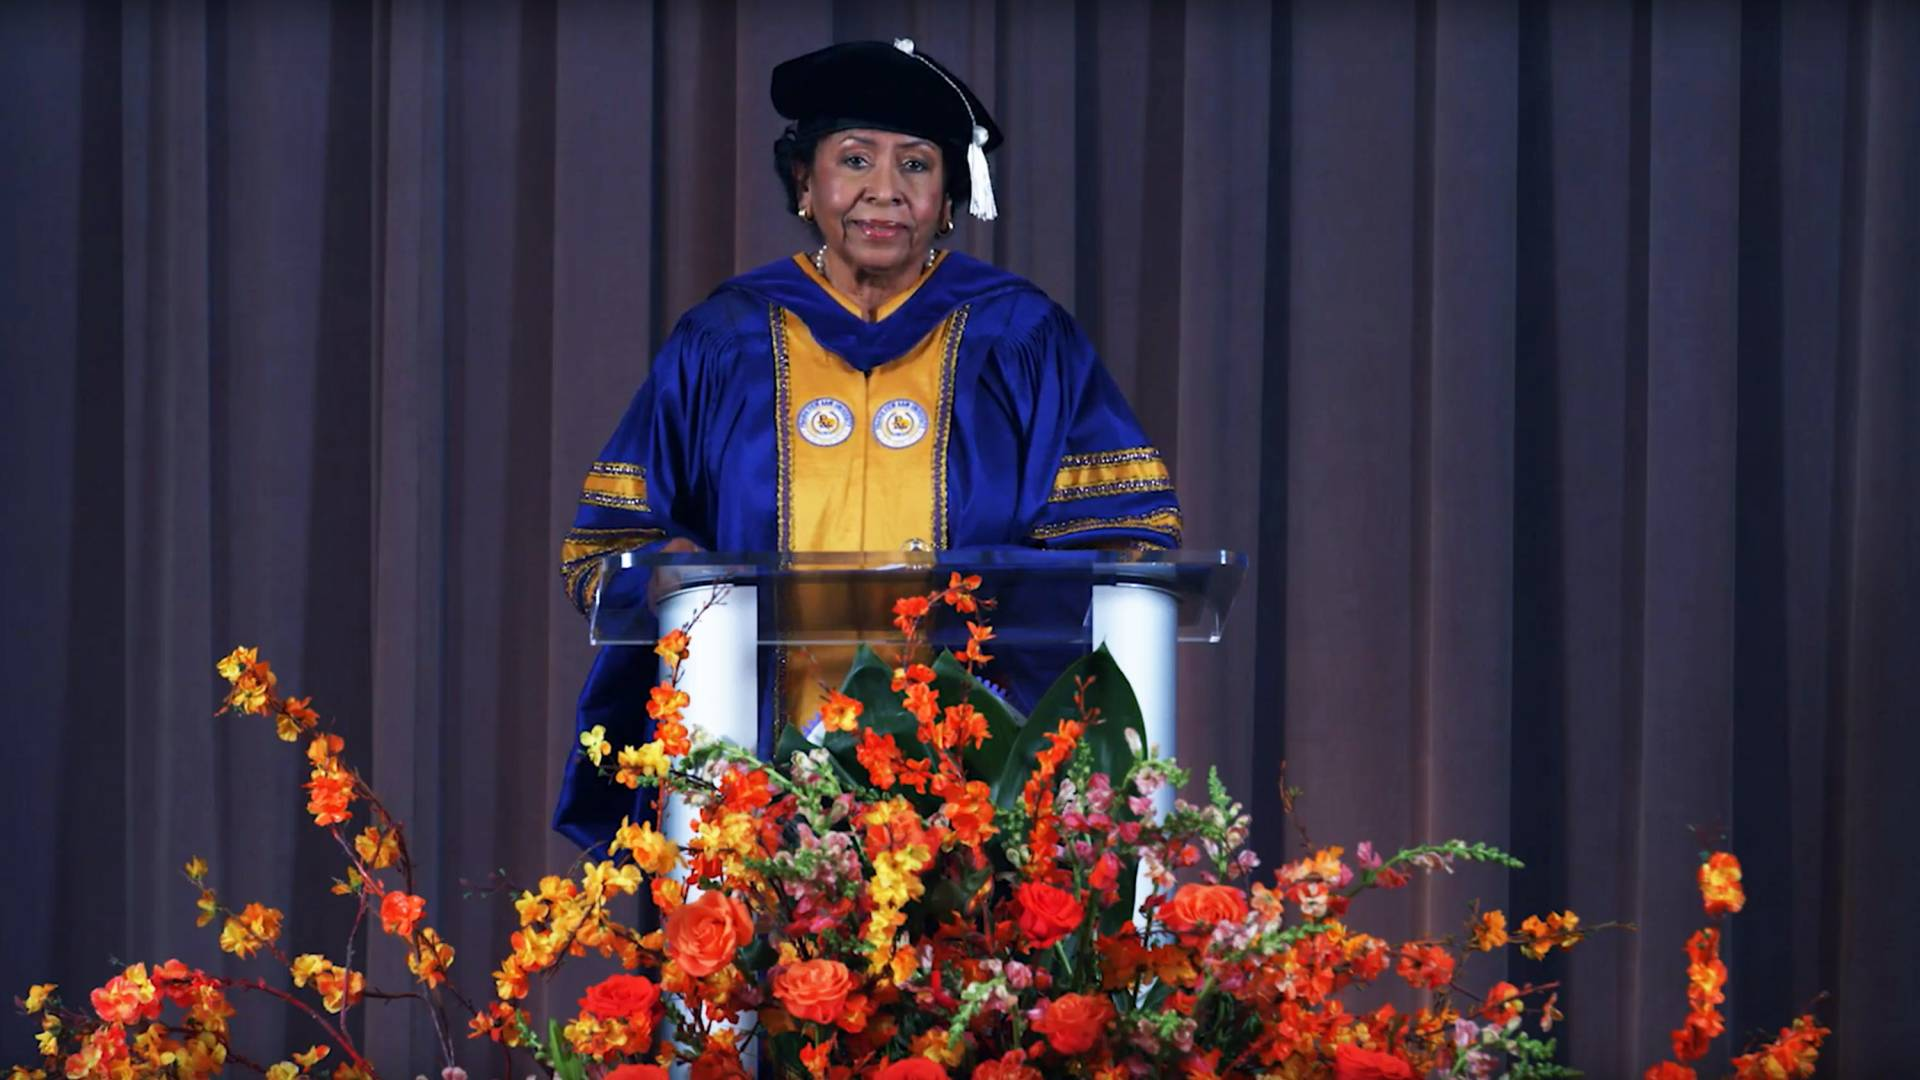 President Ruth Simmons delivering Baccalaureate remarks